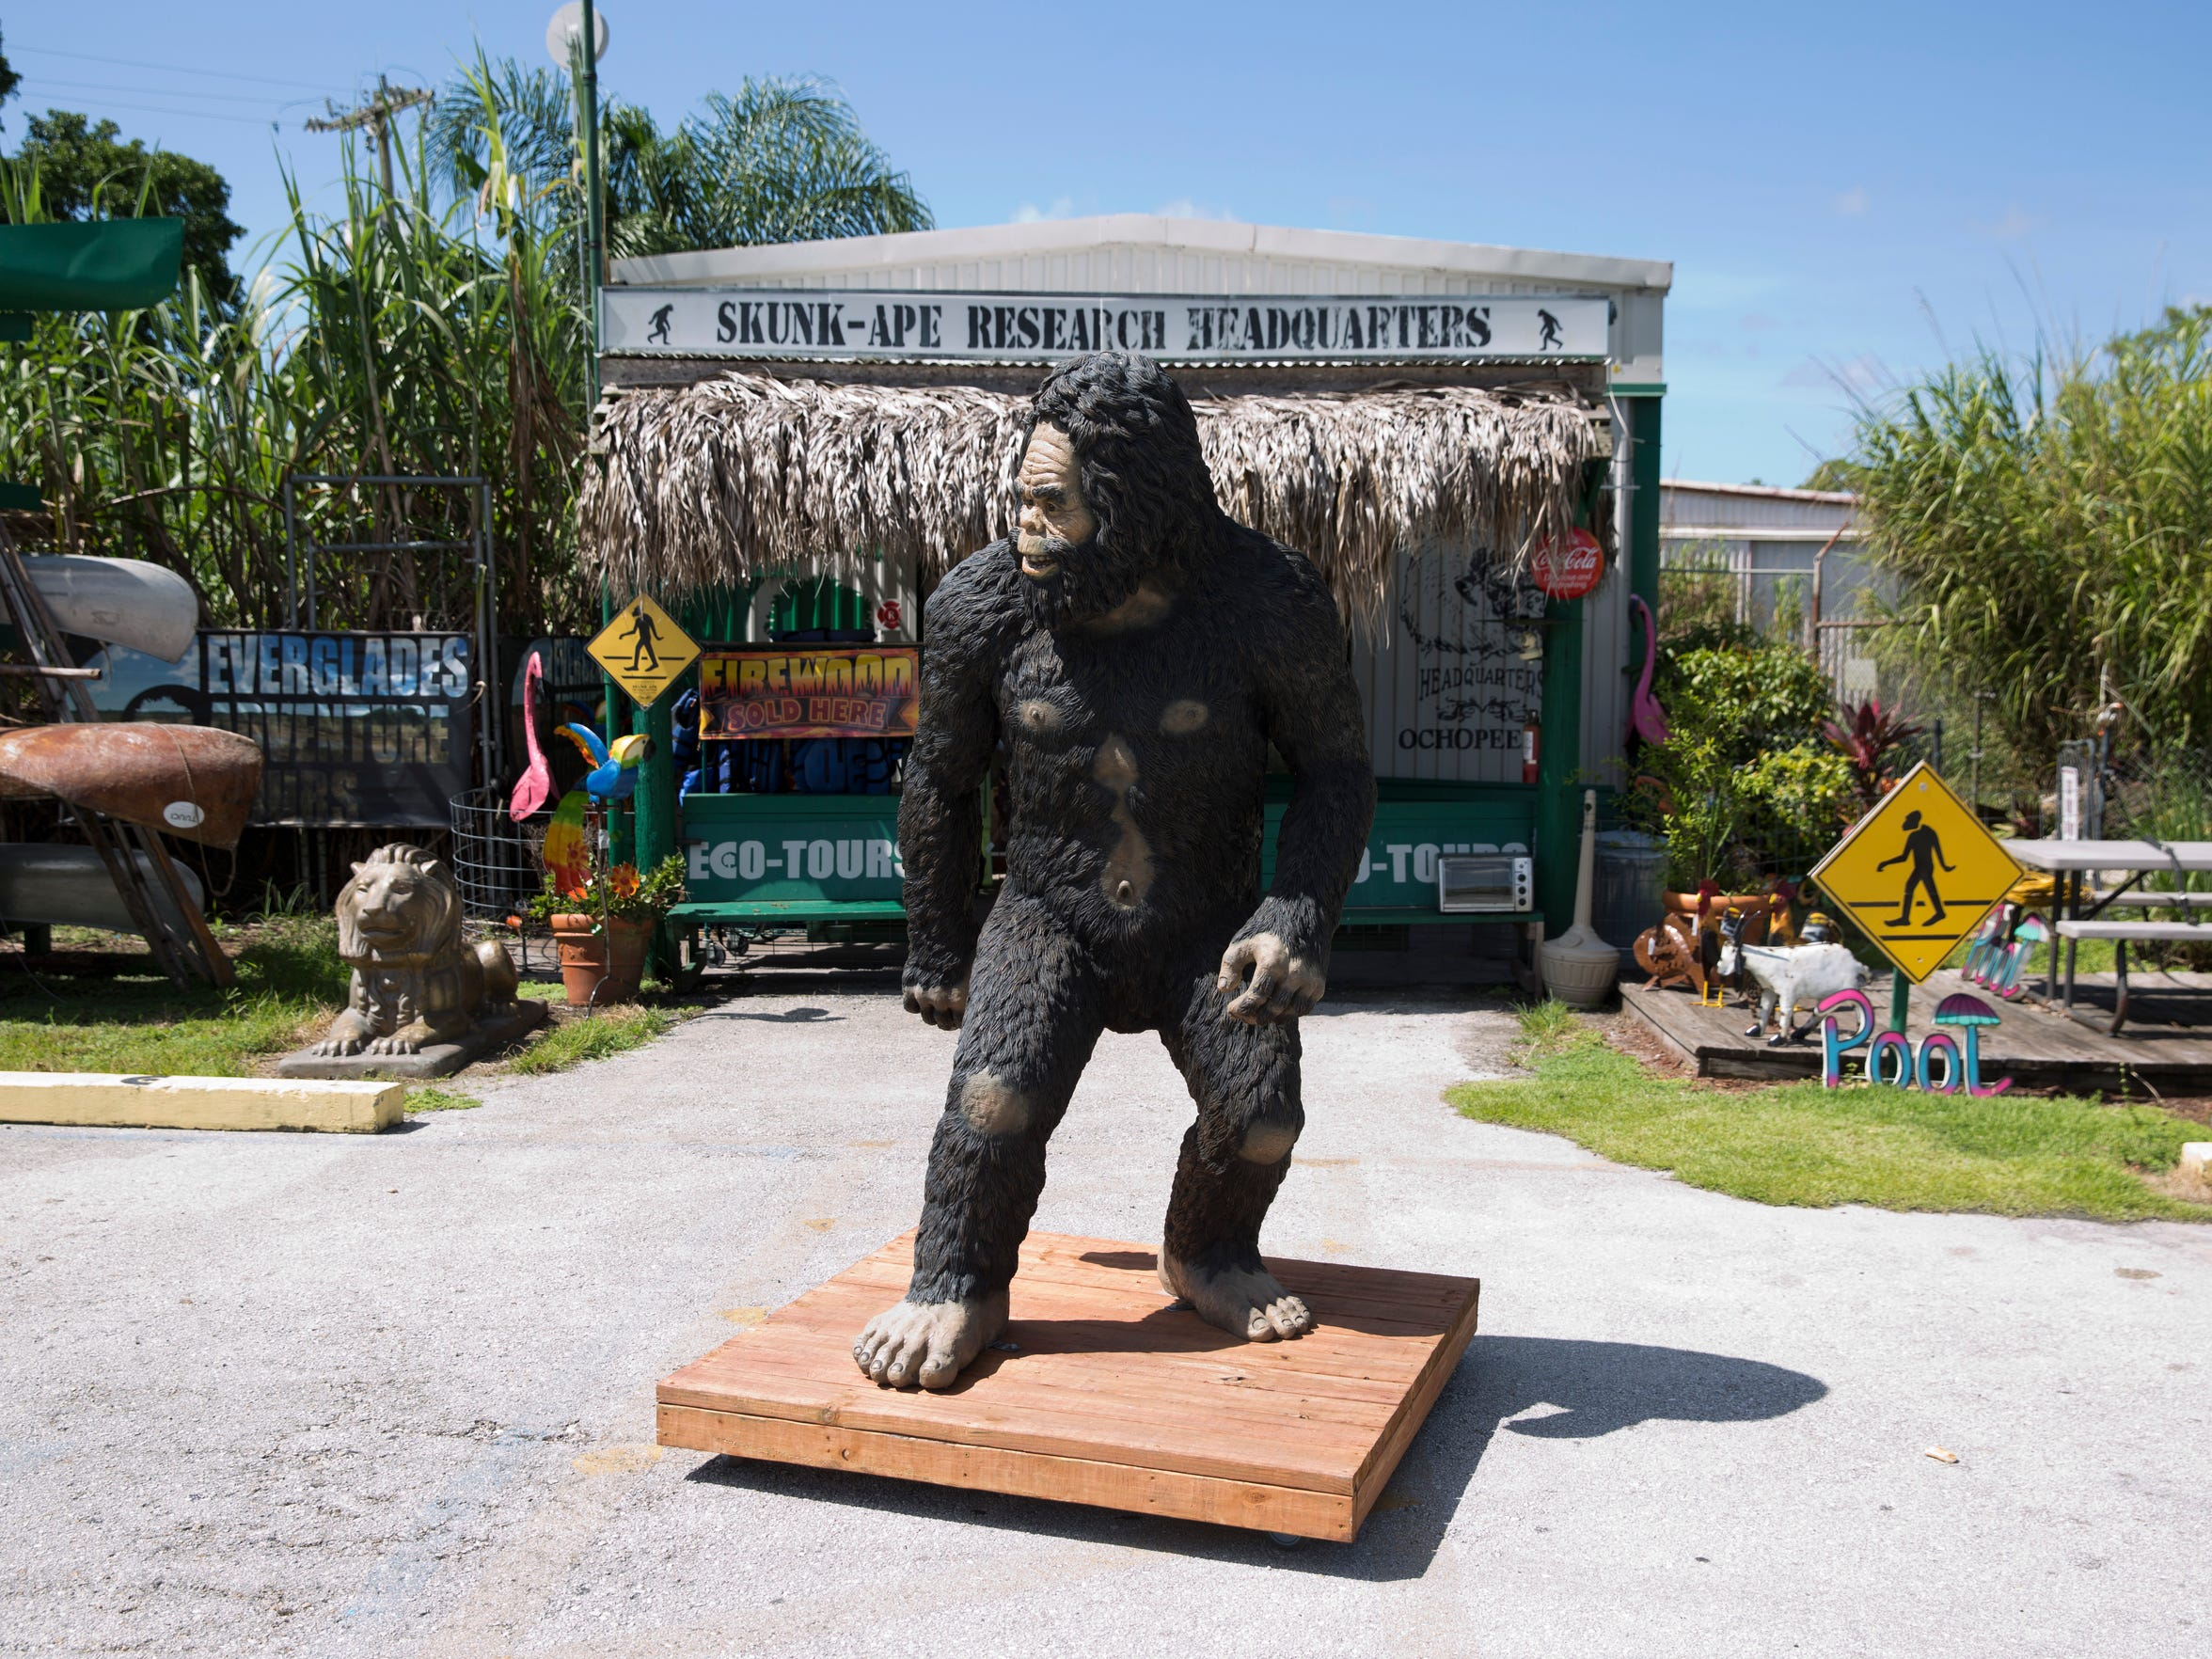 A statue of a skunk ape stands near the entrance to